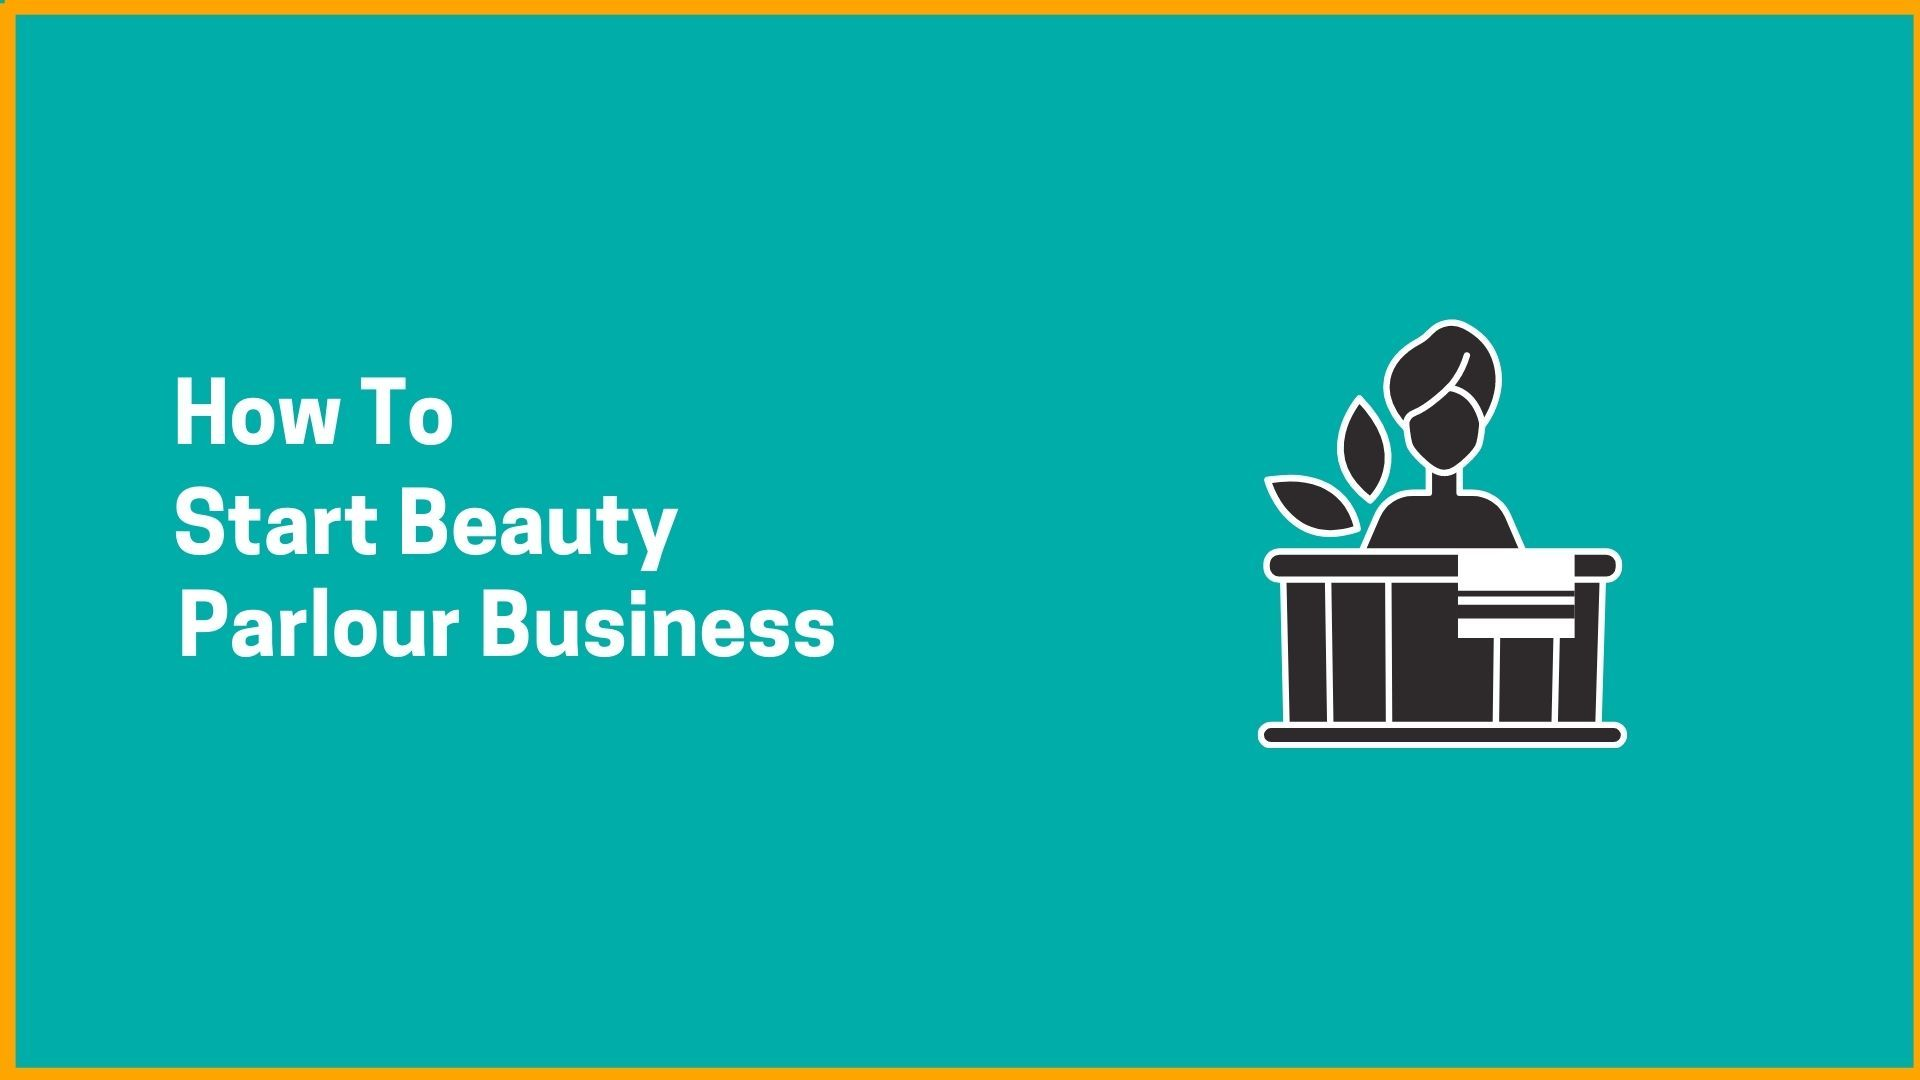 How To Start Beauty Parlour Business